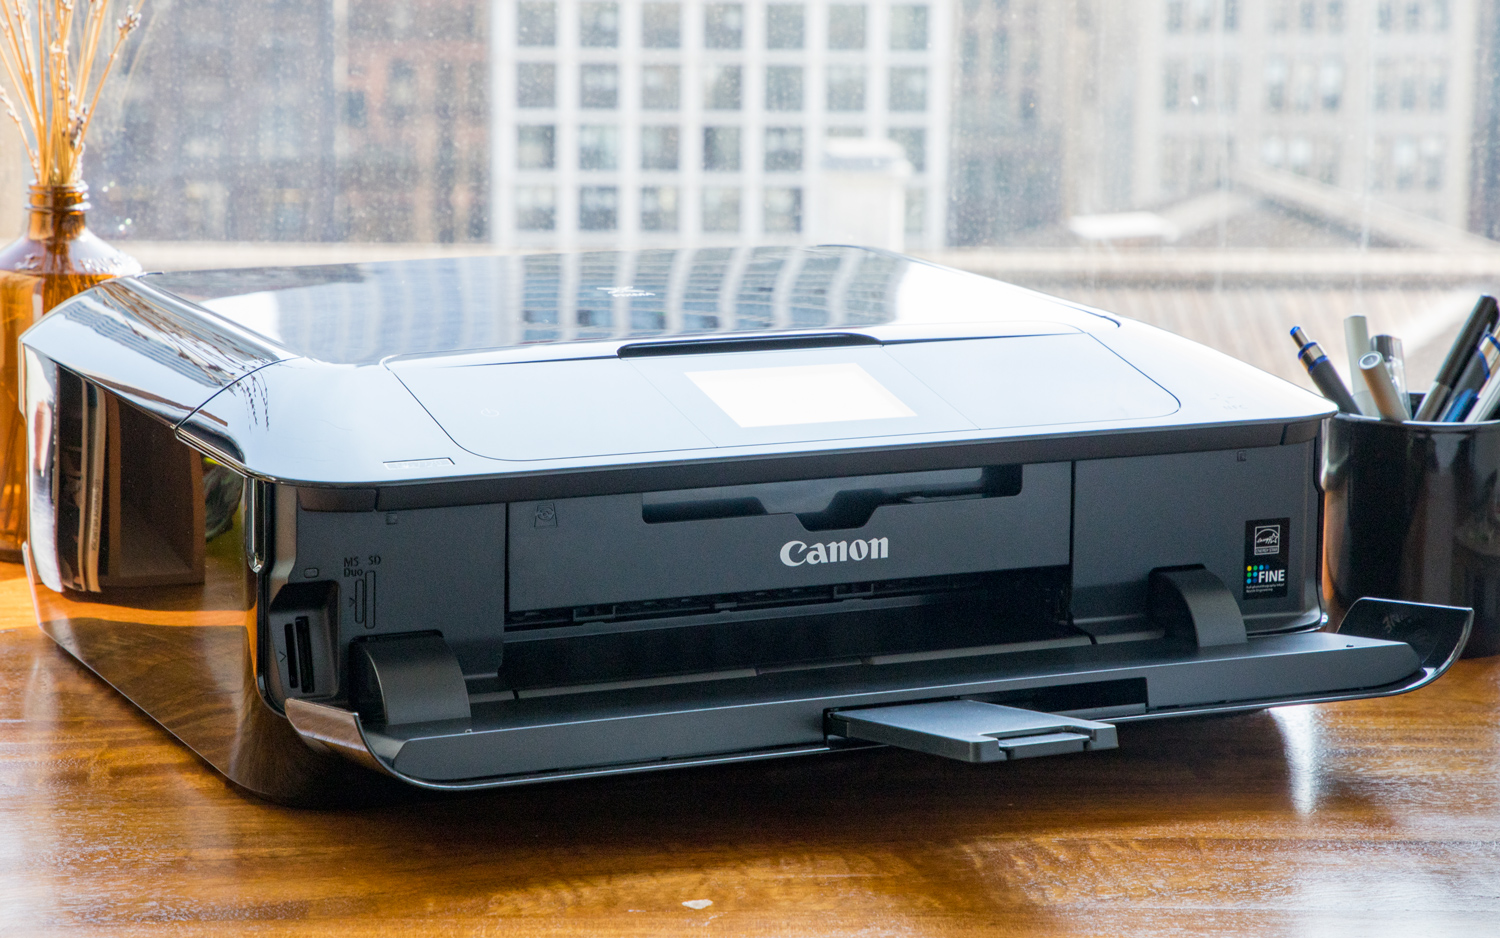 Best All in One Printers 2019 - Wireless Printer Reviews, Comparison